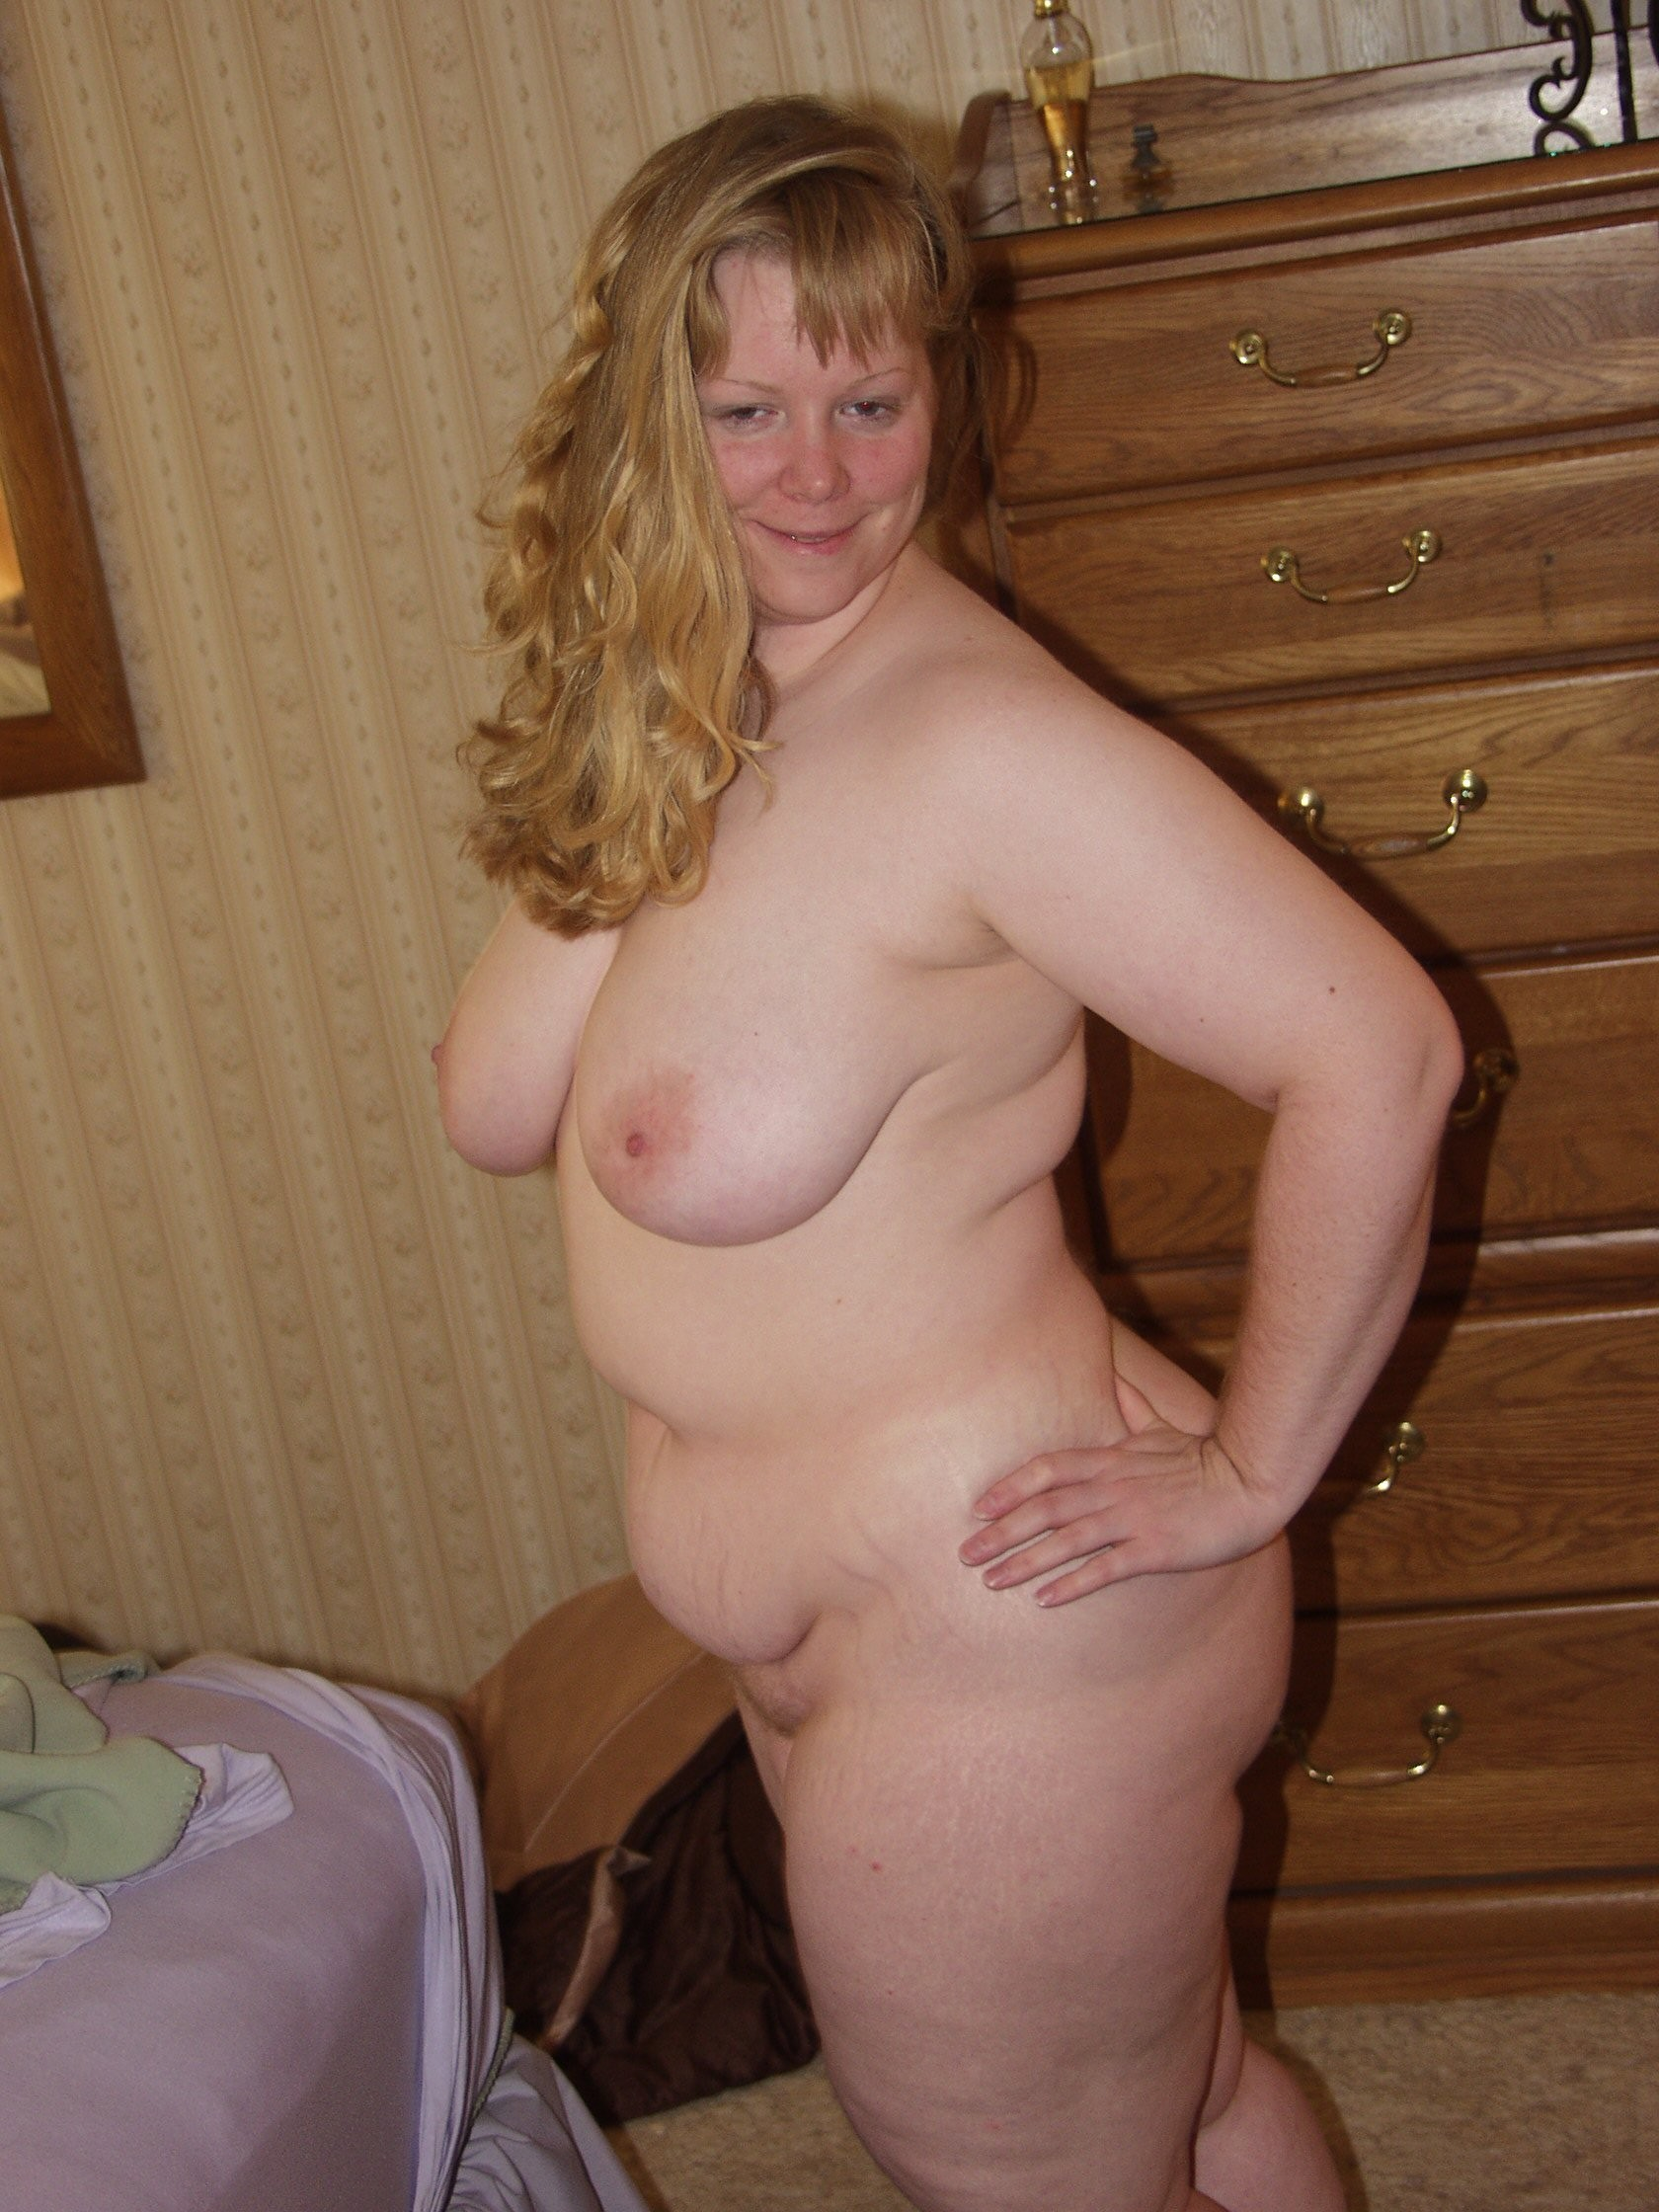 chubby mature porn - nude gallery